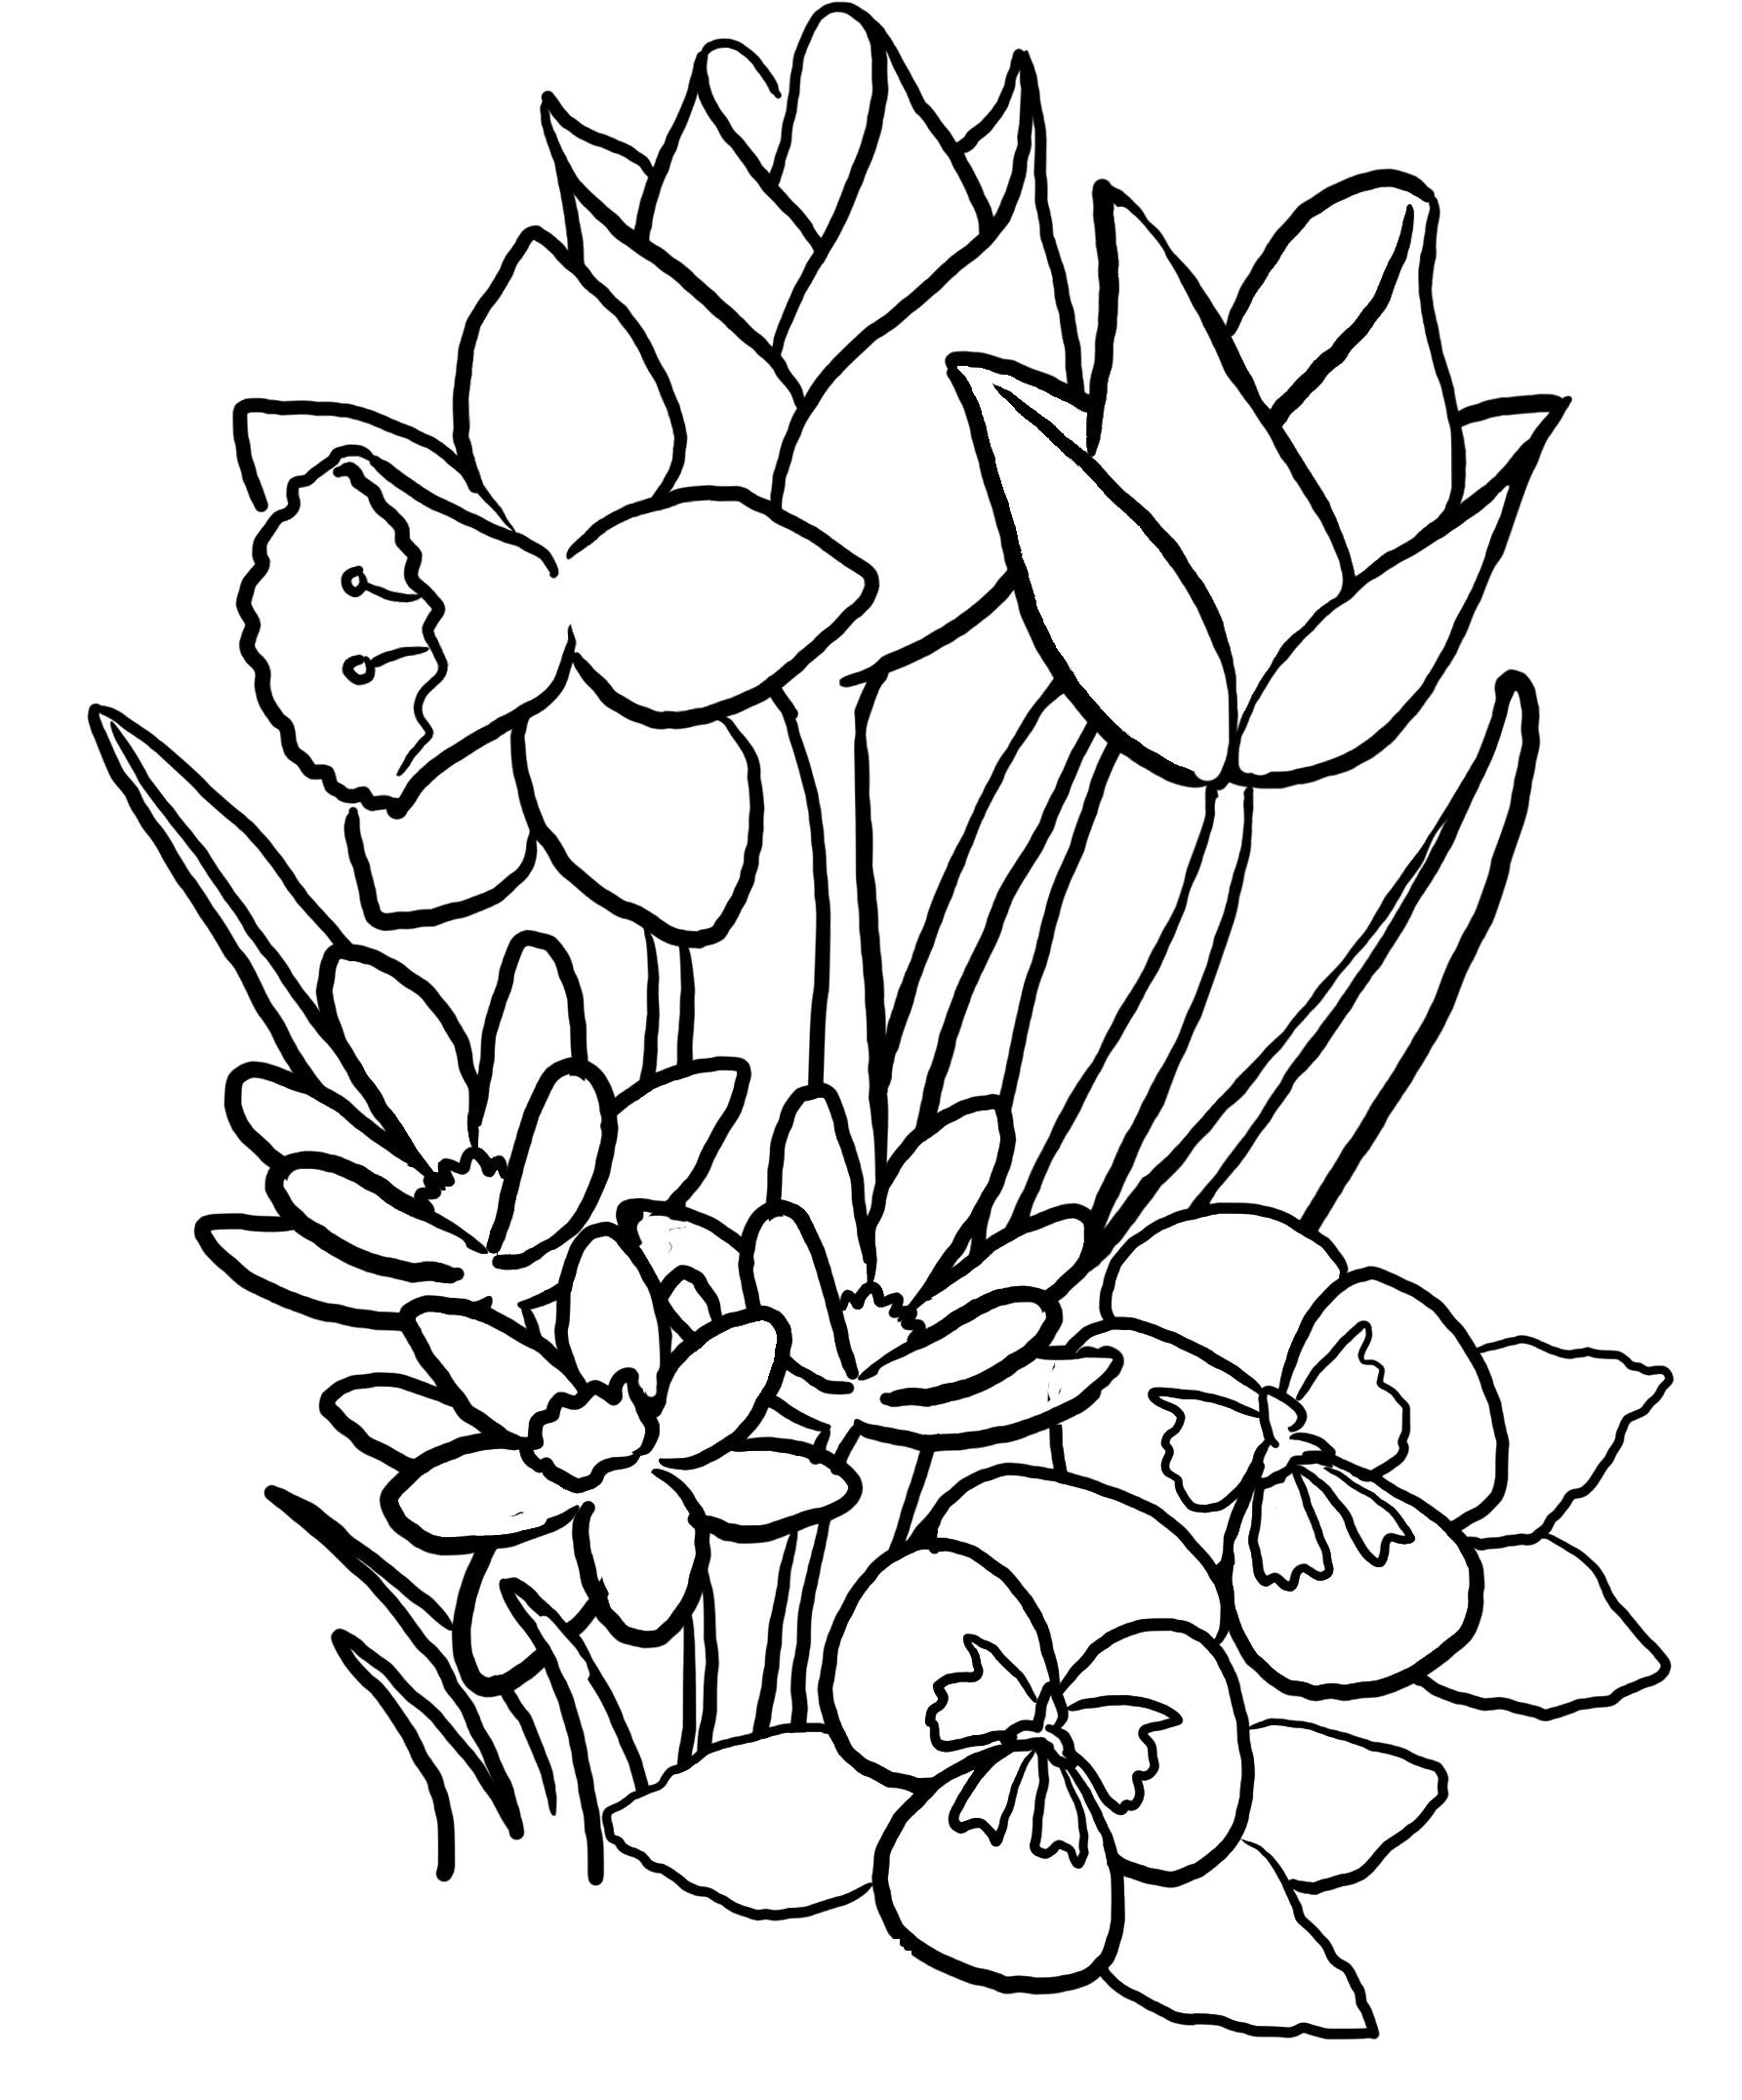 Spring Coloring Sheet Free Download Coloring Flowers Gardens